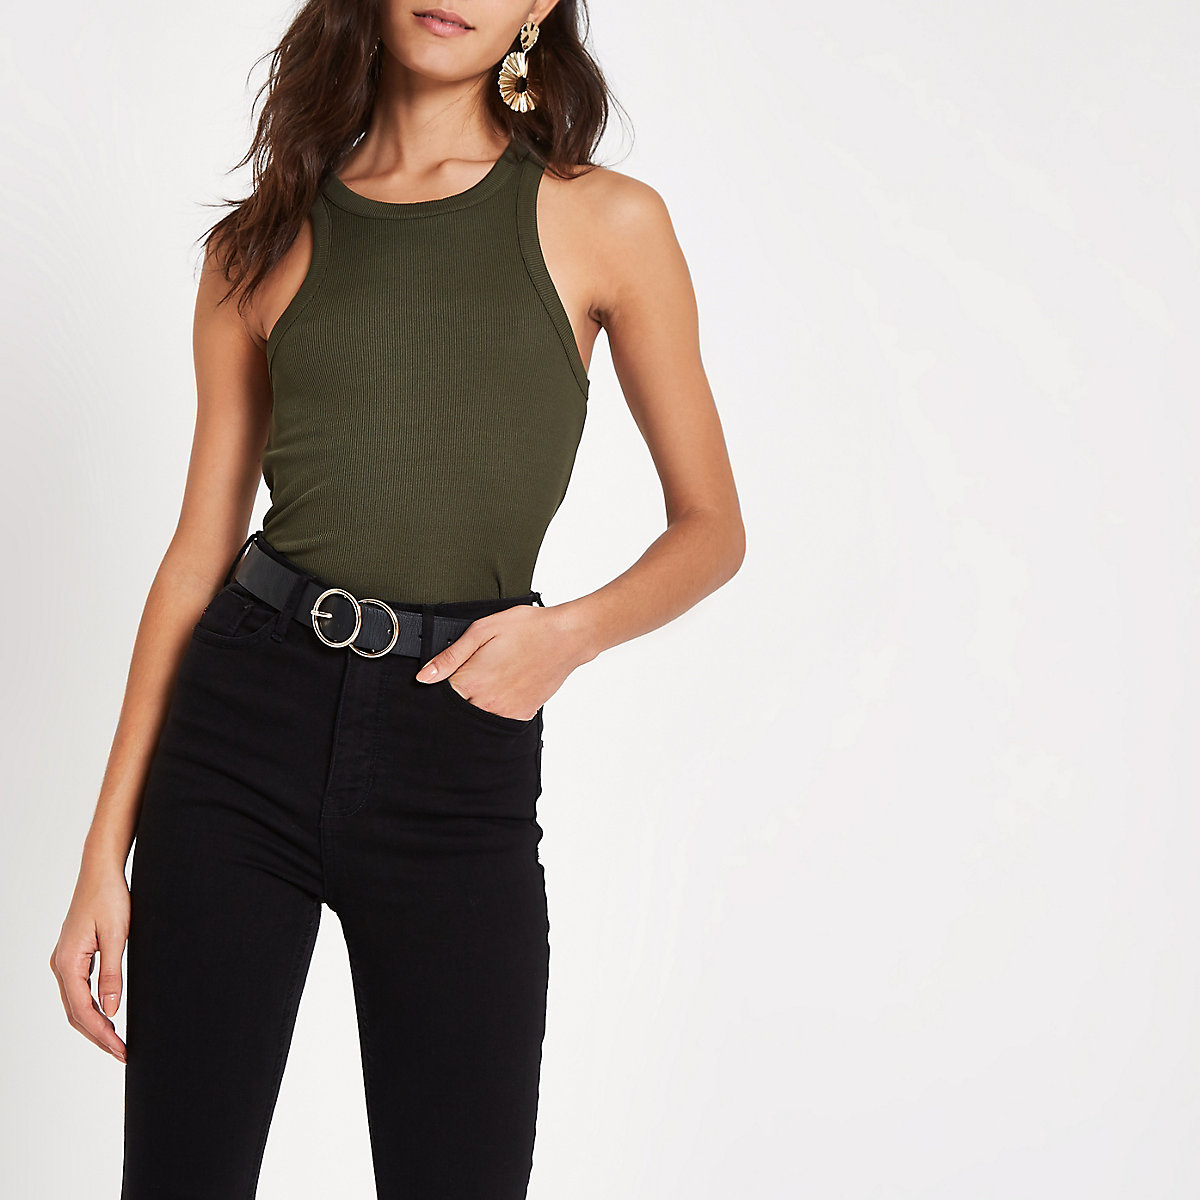 Khaki green ribbed cut away tank